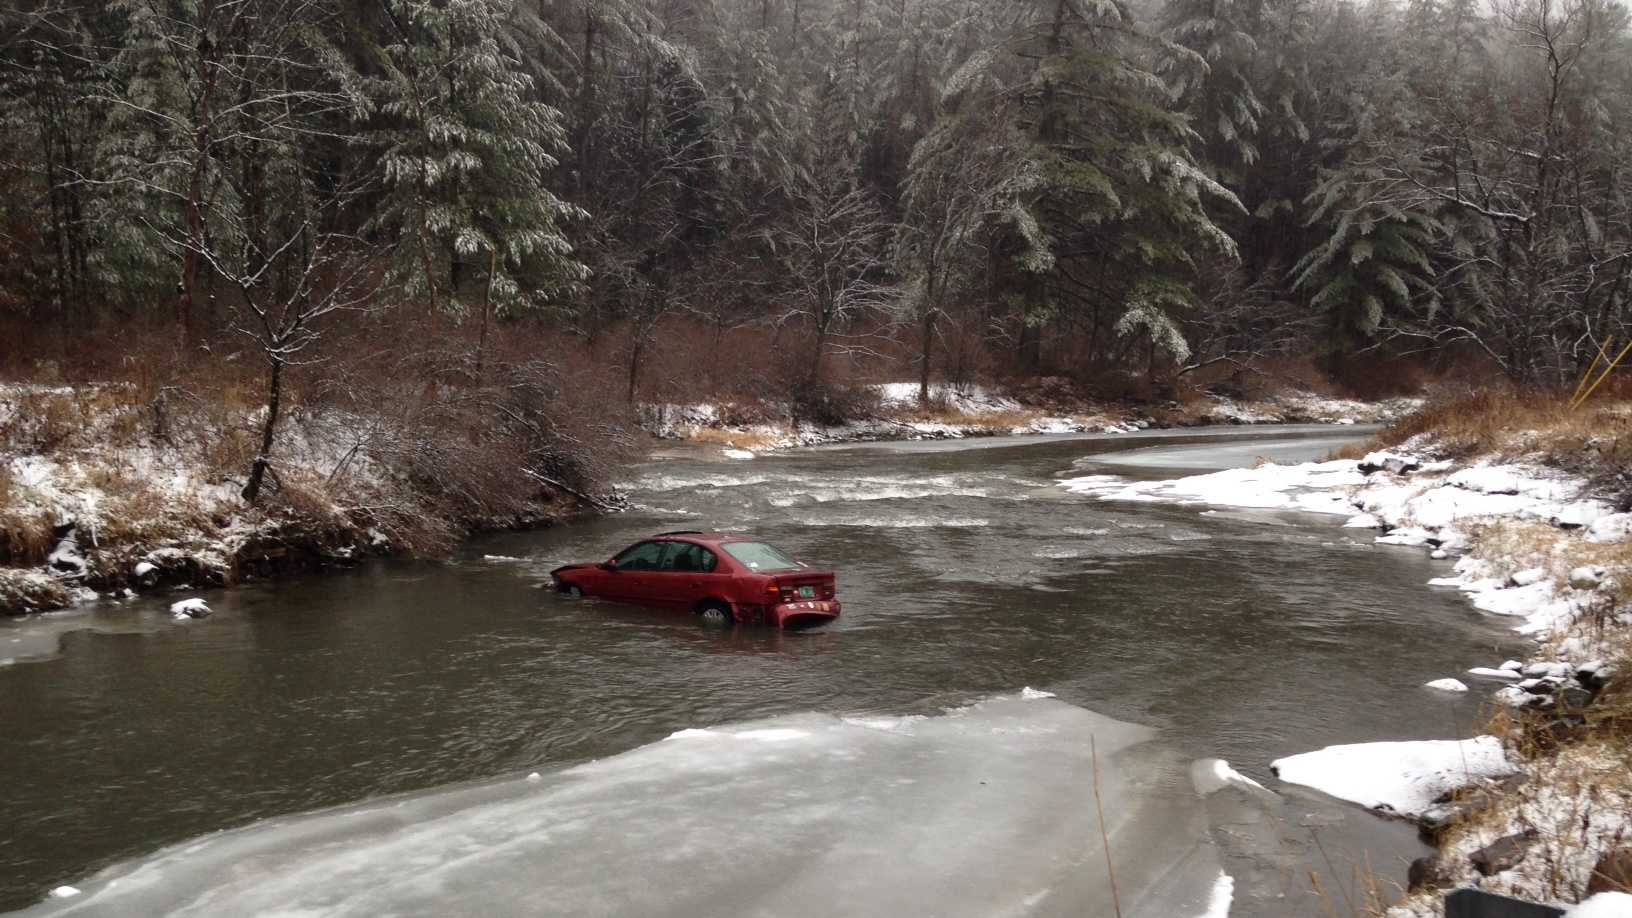 Driver crashes through guardrail, lands in river 11-27 - IMG